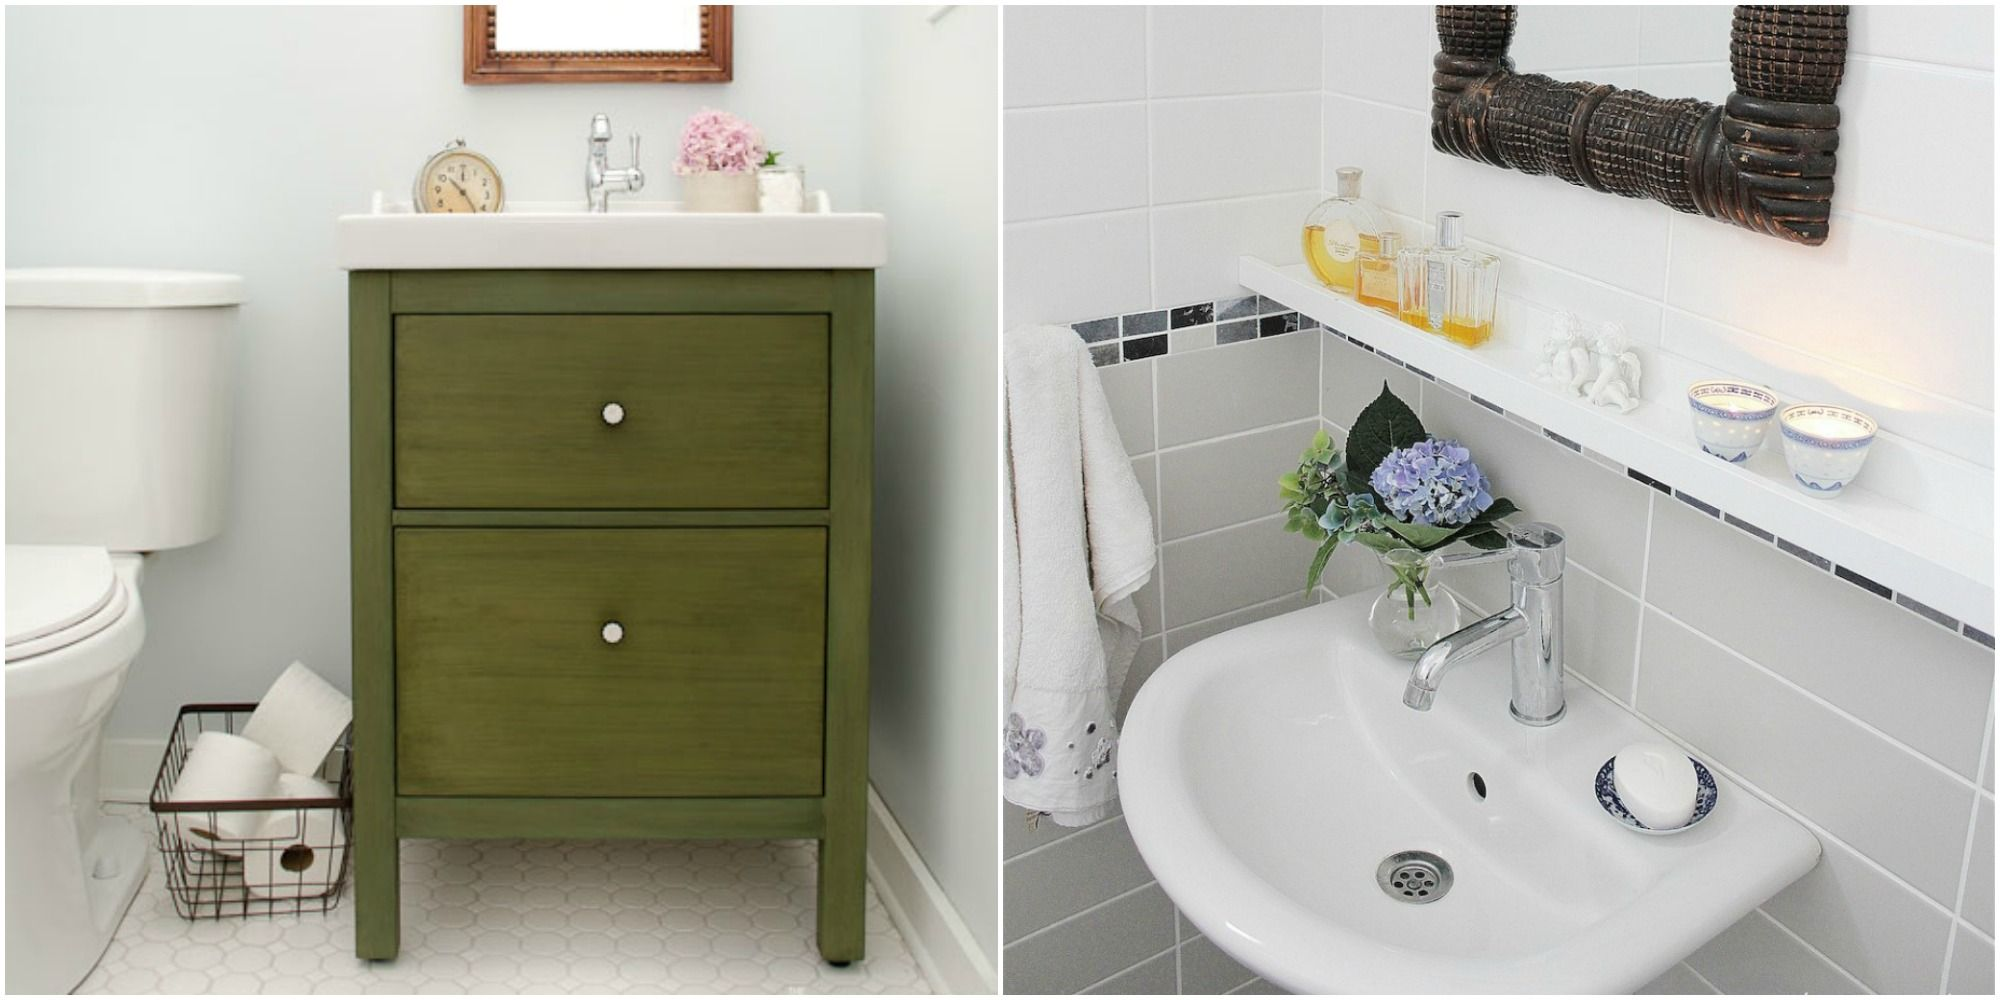 Bathroom cabinet ideas storage  coolest bathroom storage ideas for an efficient home  tiny